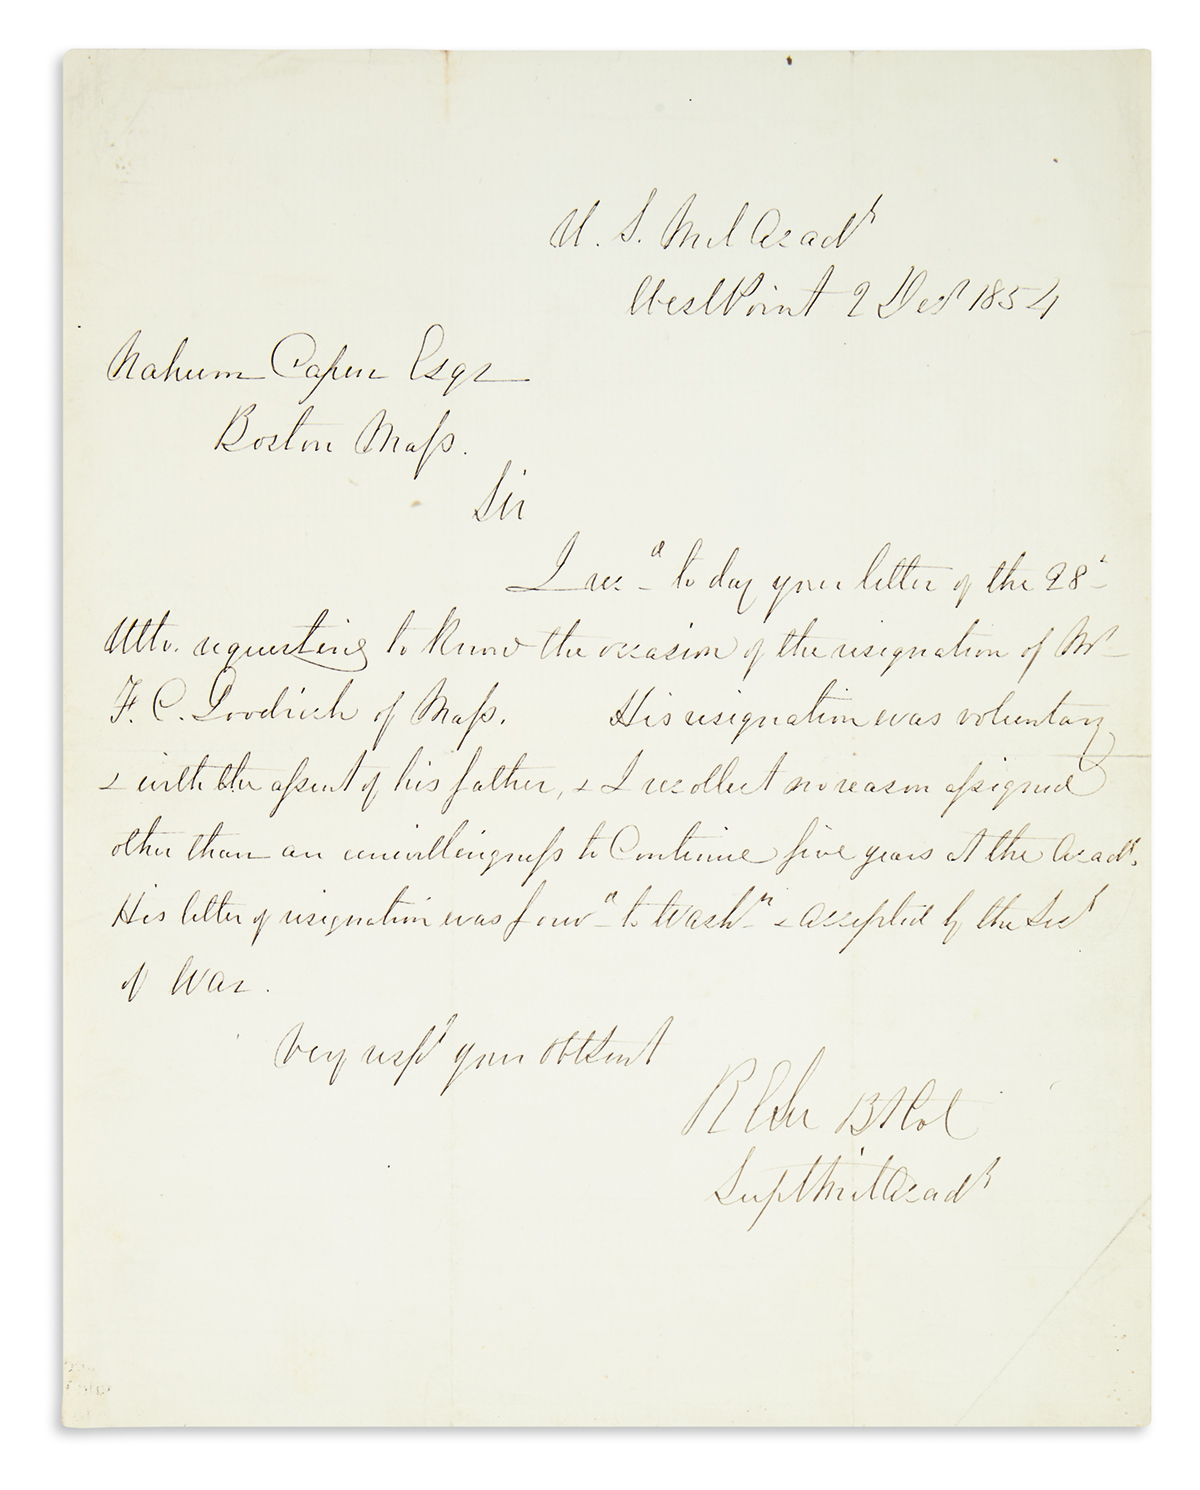 LEE-ROBERT-E-Autograph-Letter-Signed-RELee-Bt-Col--SuptMilAc